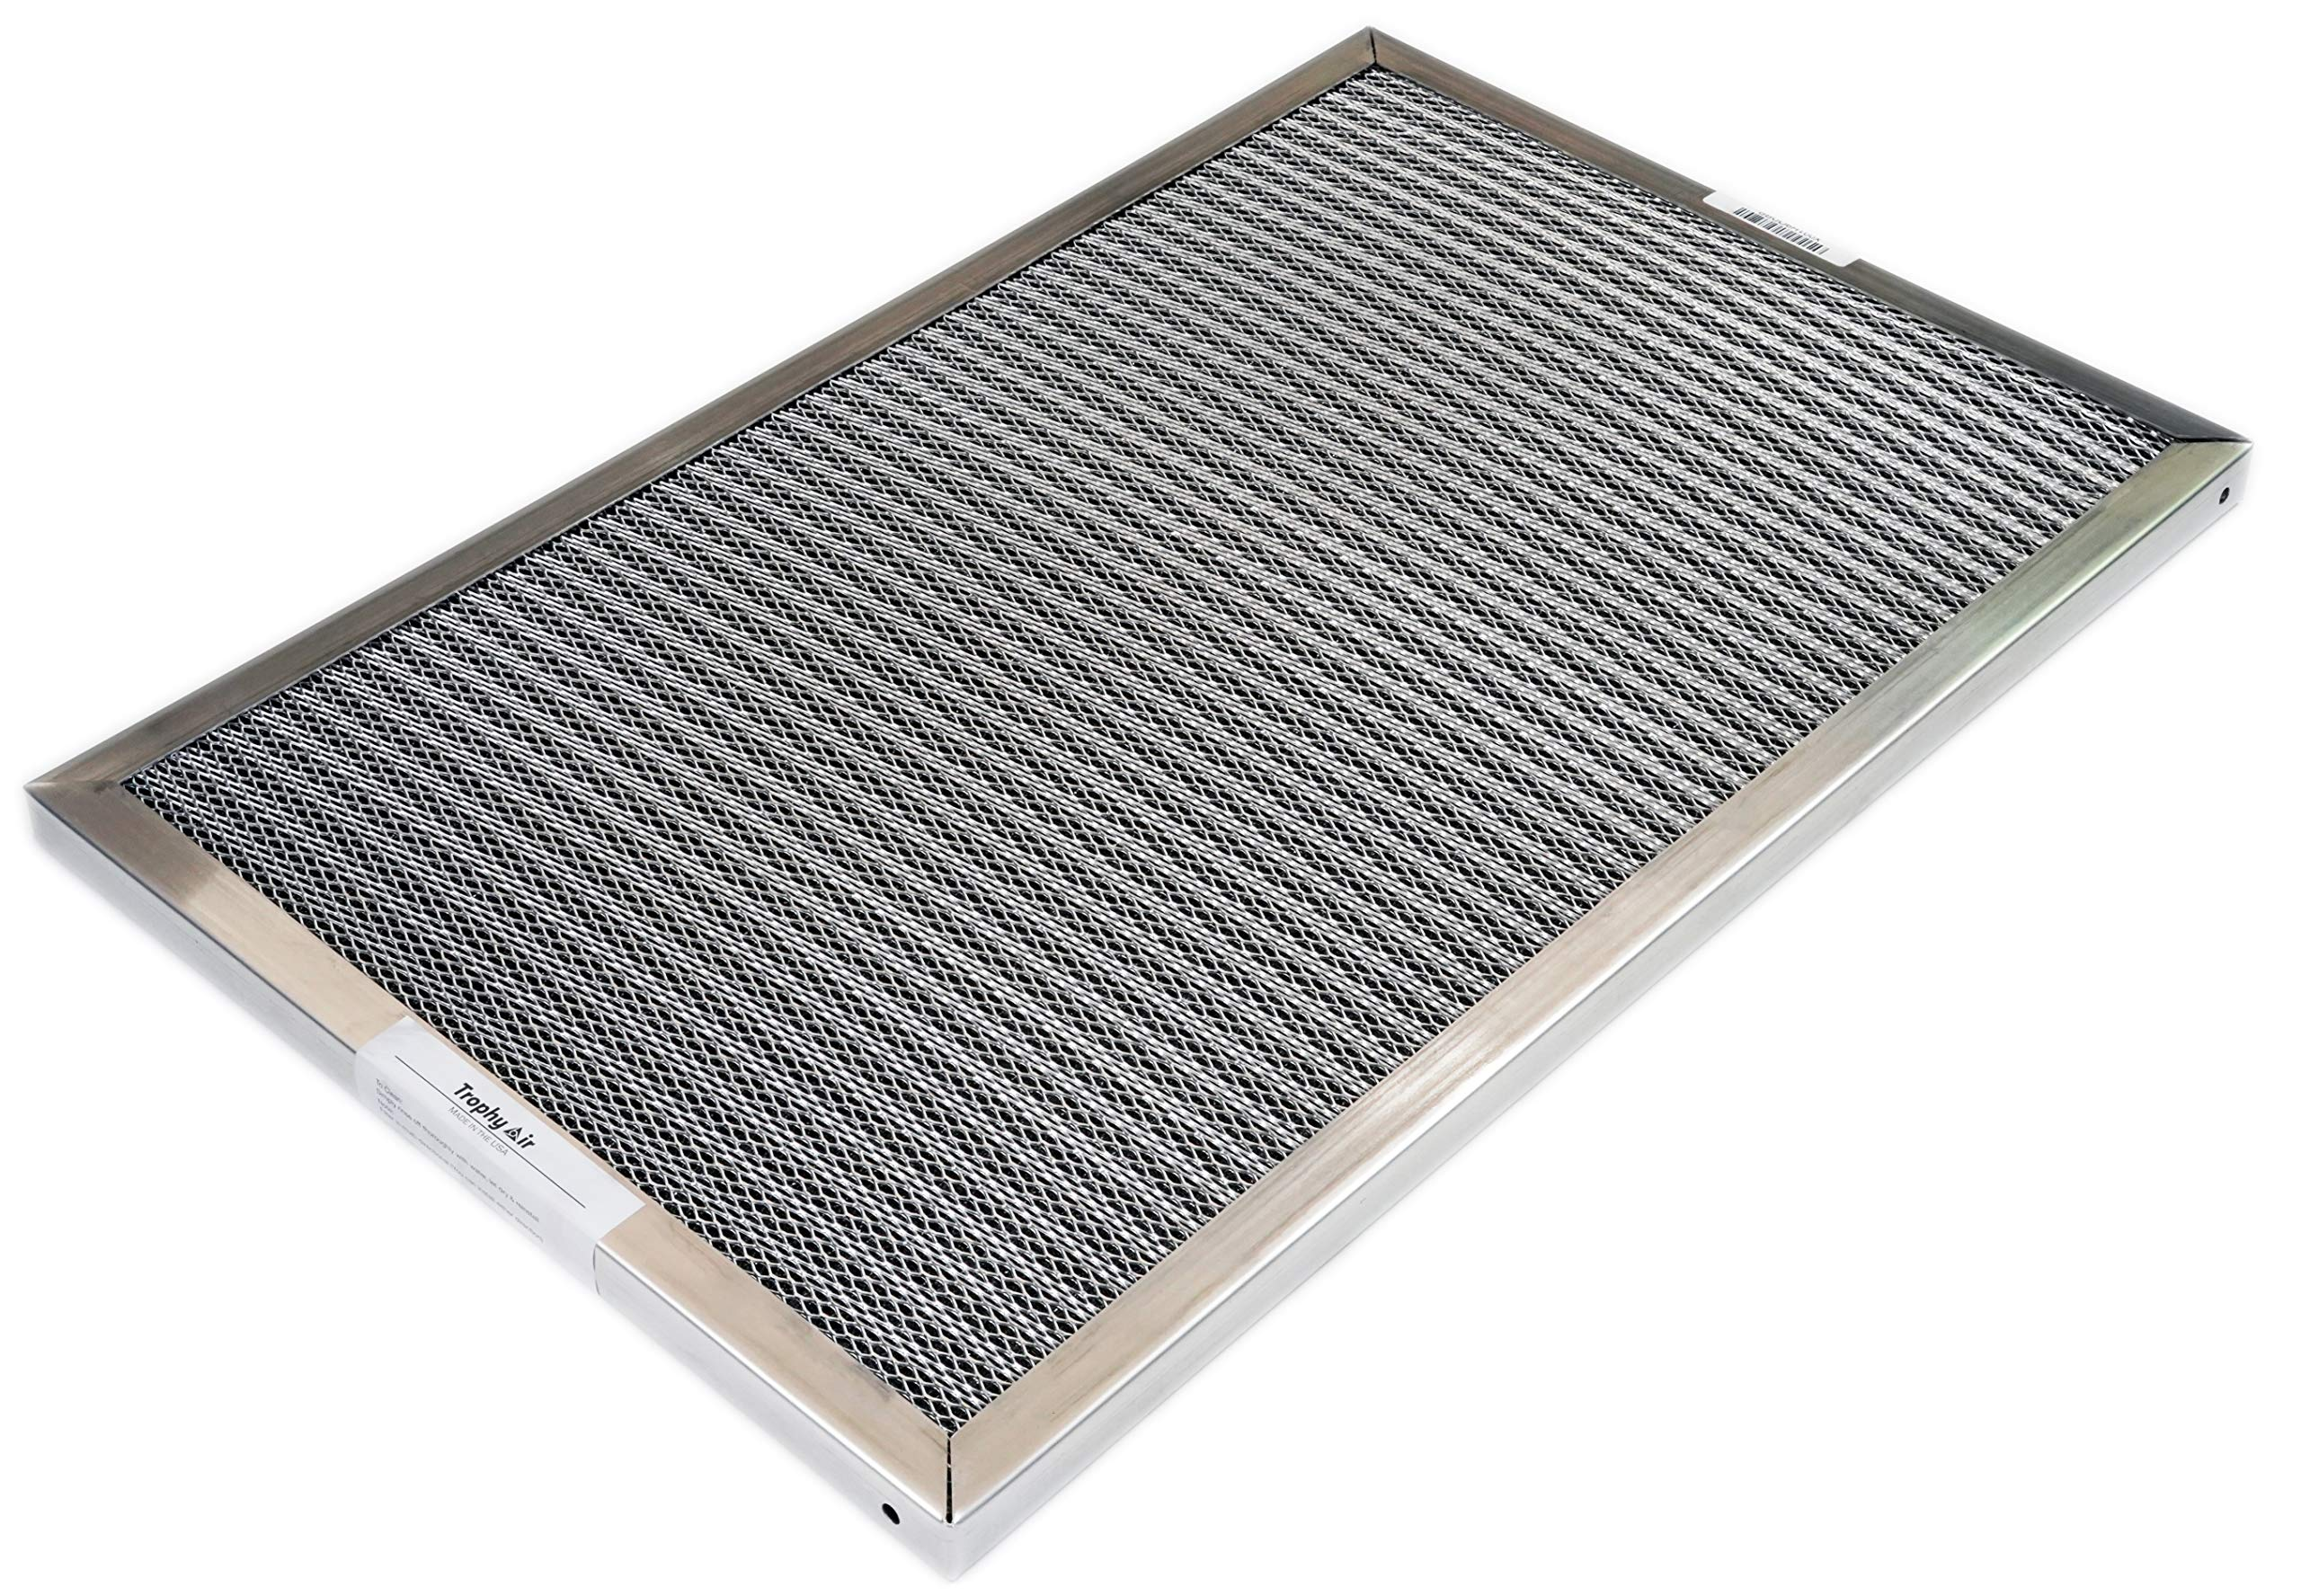 Easy to Install Purify Allergens for Cleaner Trophy Air Electrostatic Air Filter Replacement Made in the USA Healthier Home Environment 12x12x1 HVAC Conditioner Purifier